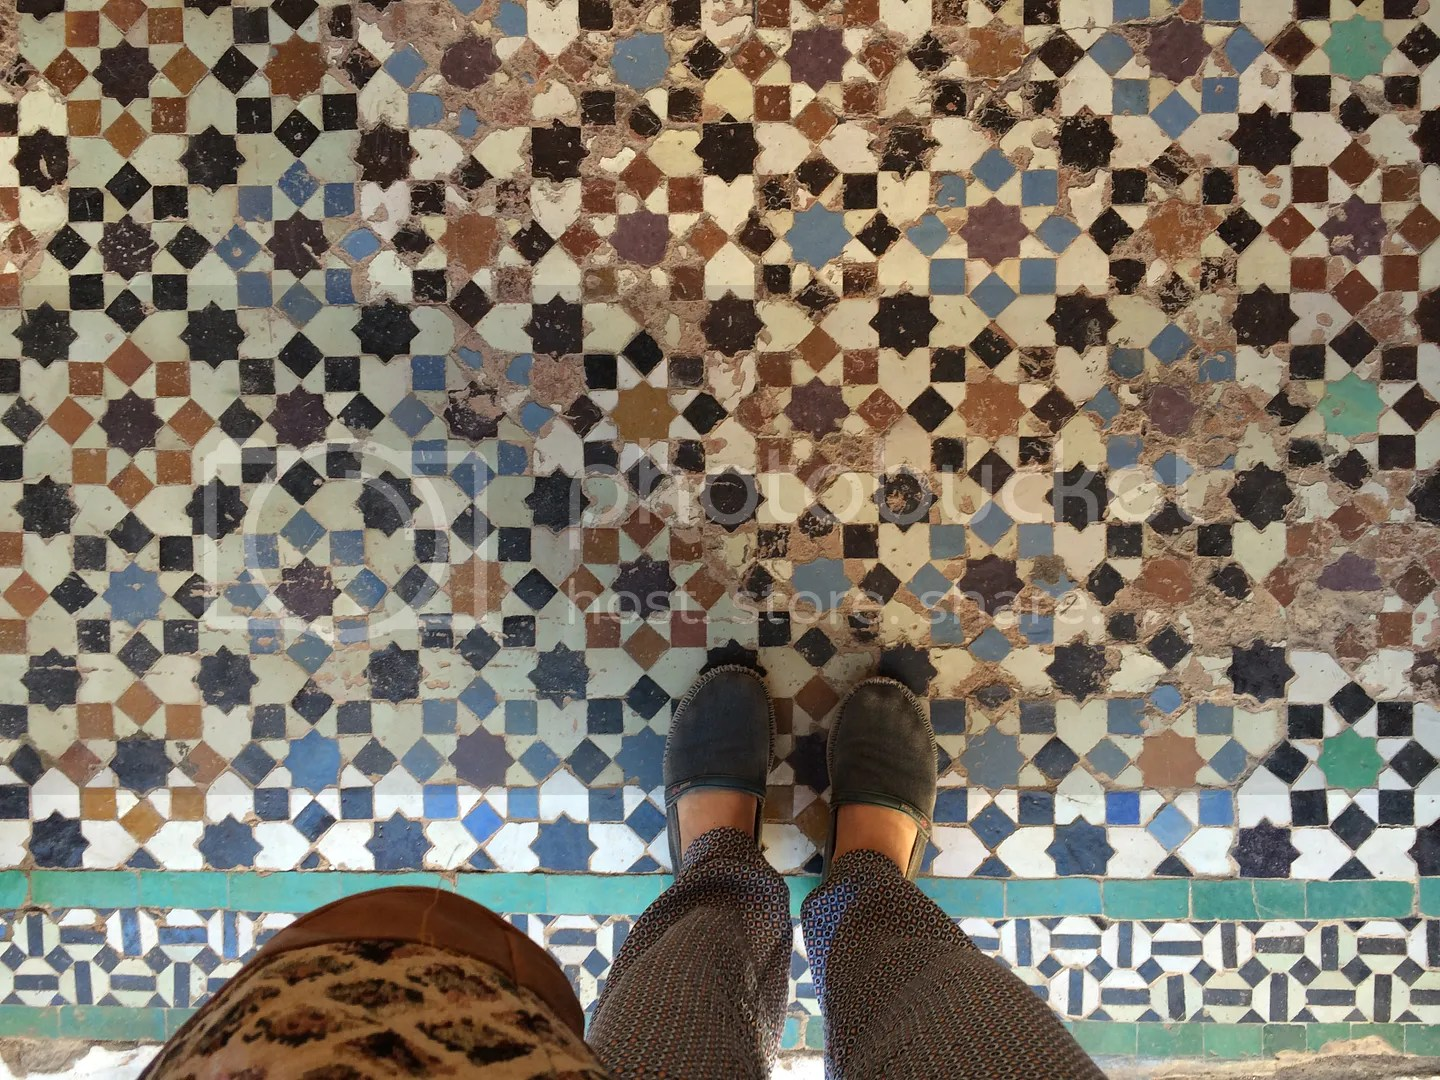 floor tiles, marrakech